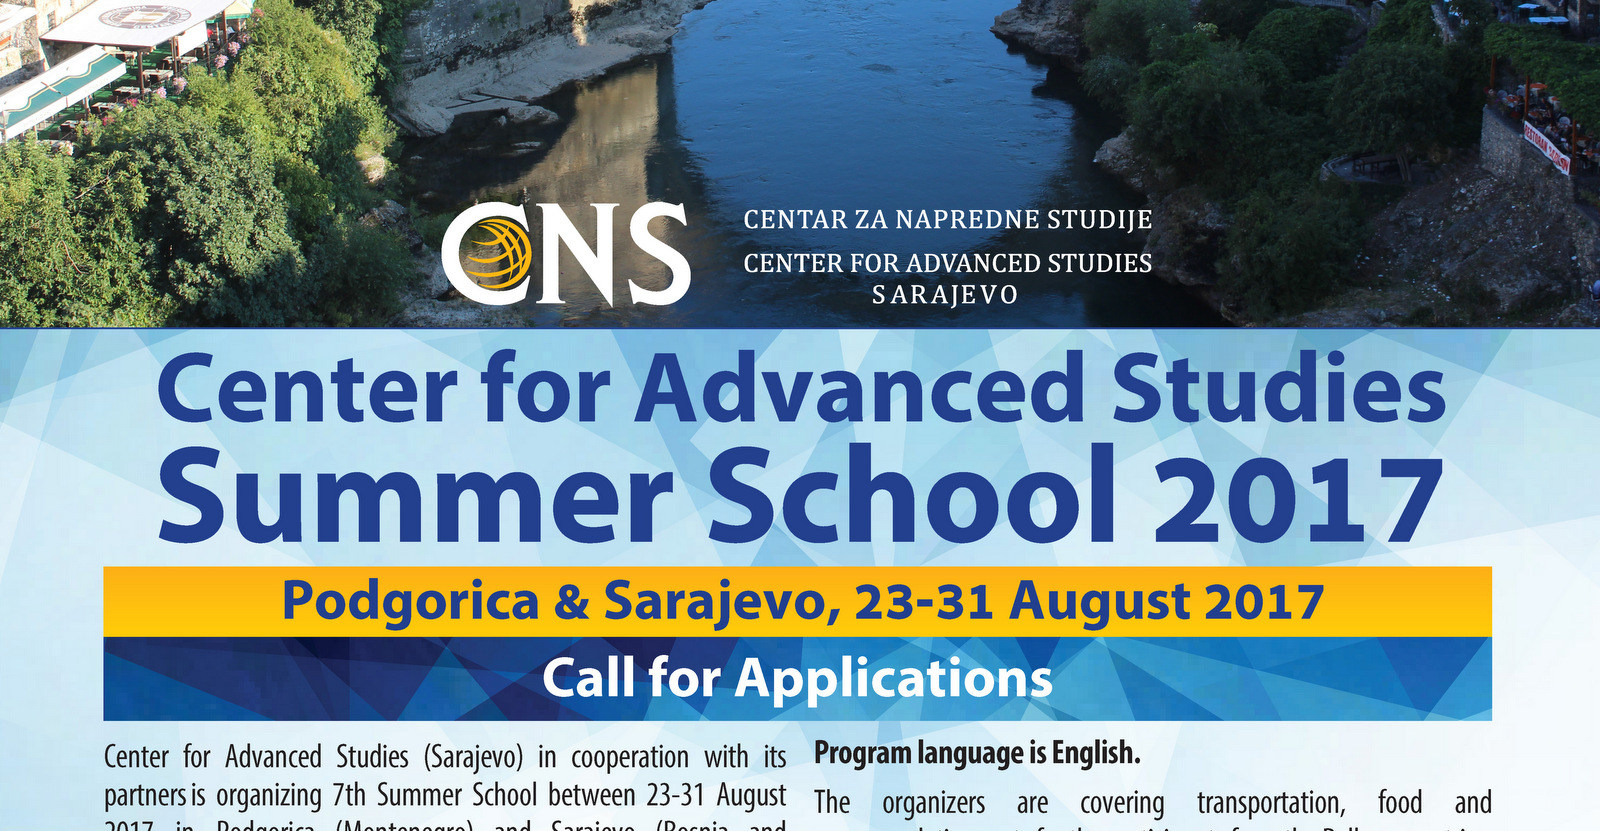 CALL FOR APPLICATIONS: CNS Summer School 2017